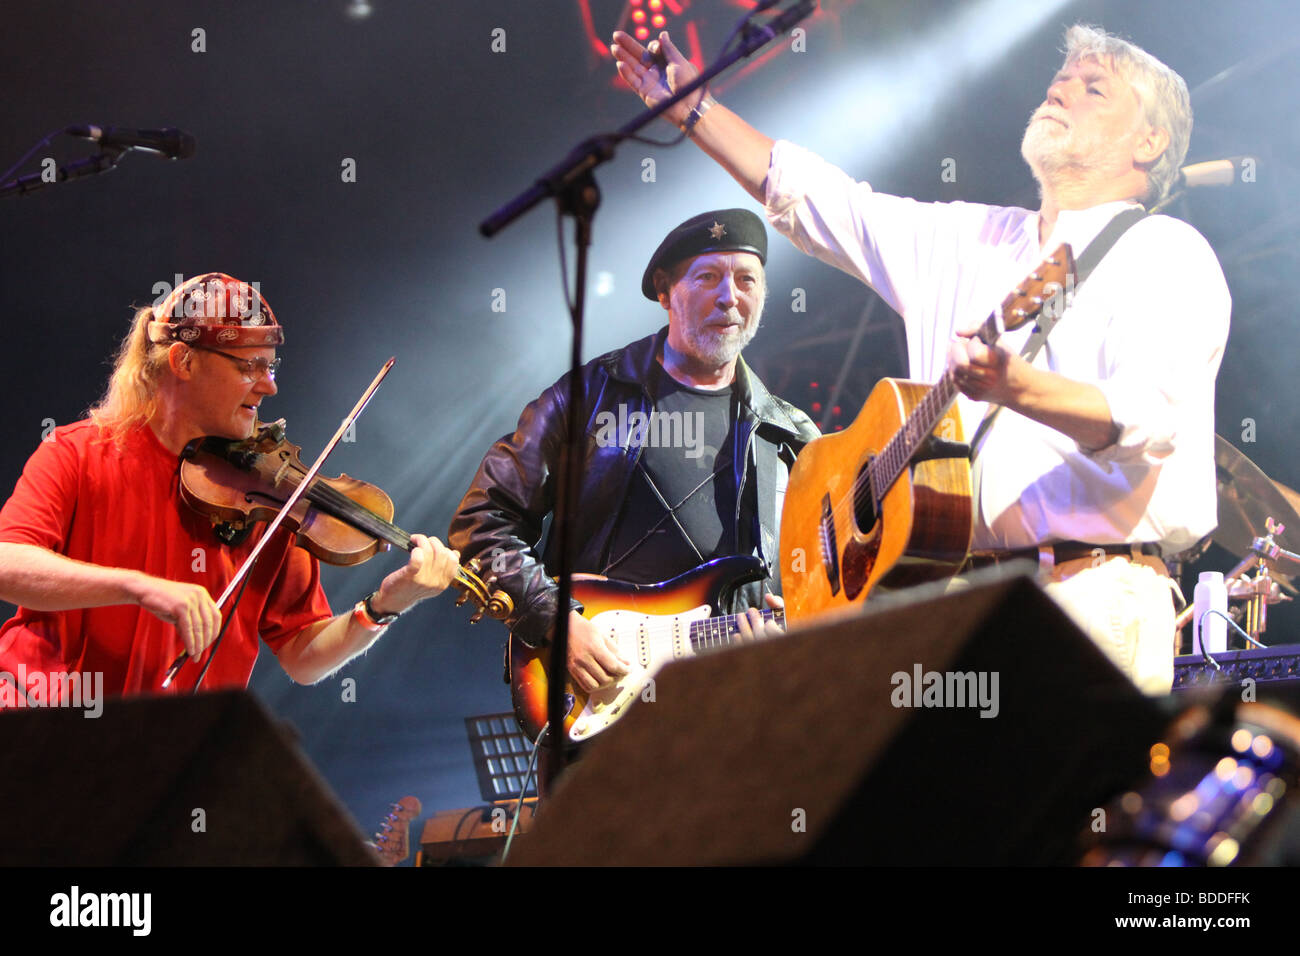 Ric Sanders with Richard Thompson and Simon Nicol at Fairport Conventions Cropredy Festival 15th August 2009 - Stock Image